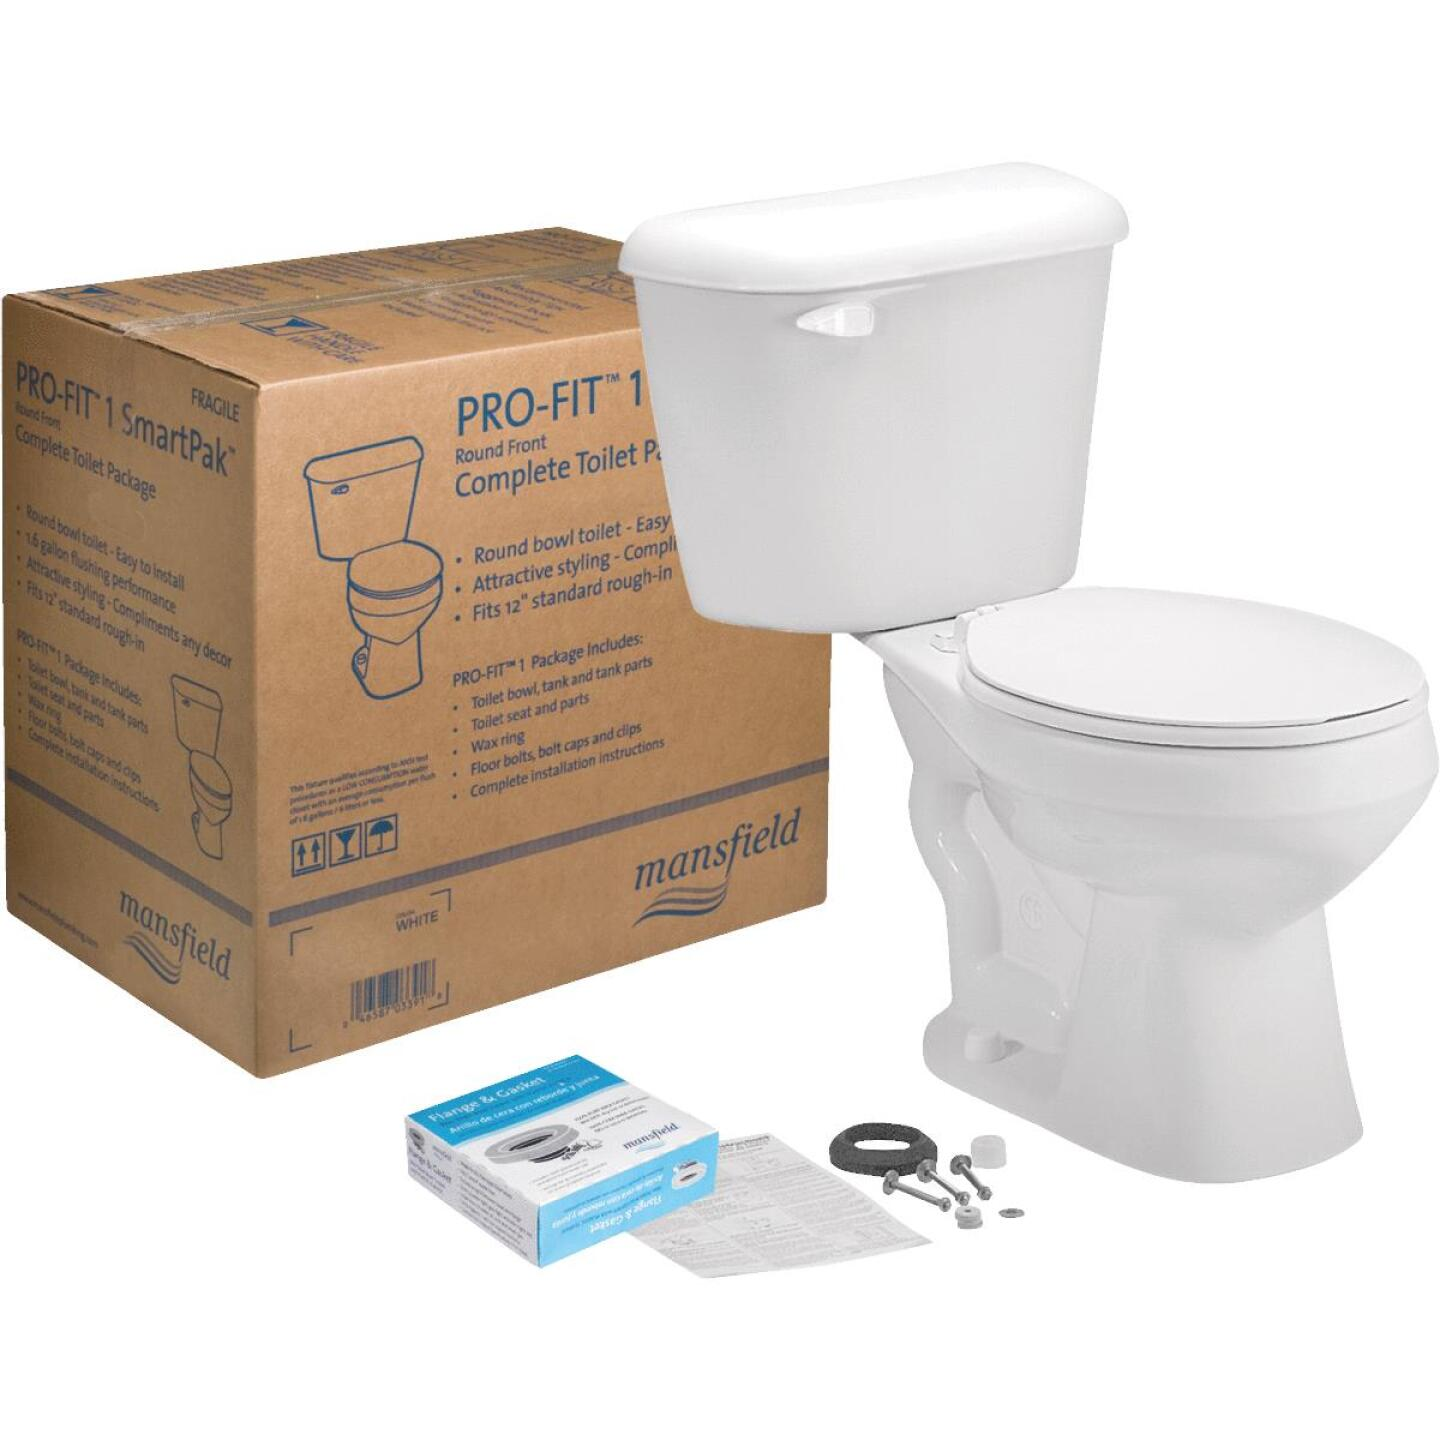 Mansfield Pro-Fit 1-128 HET Biscuit Round Bowl 1.28 GPF Complete Toilet Image 1